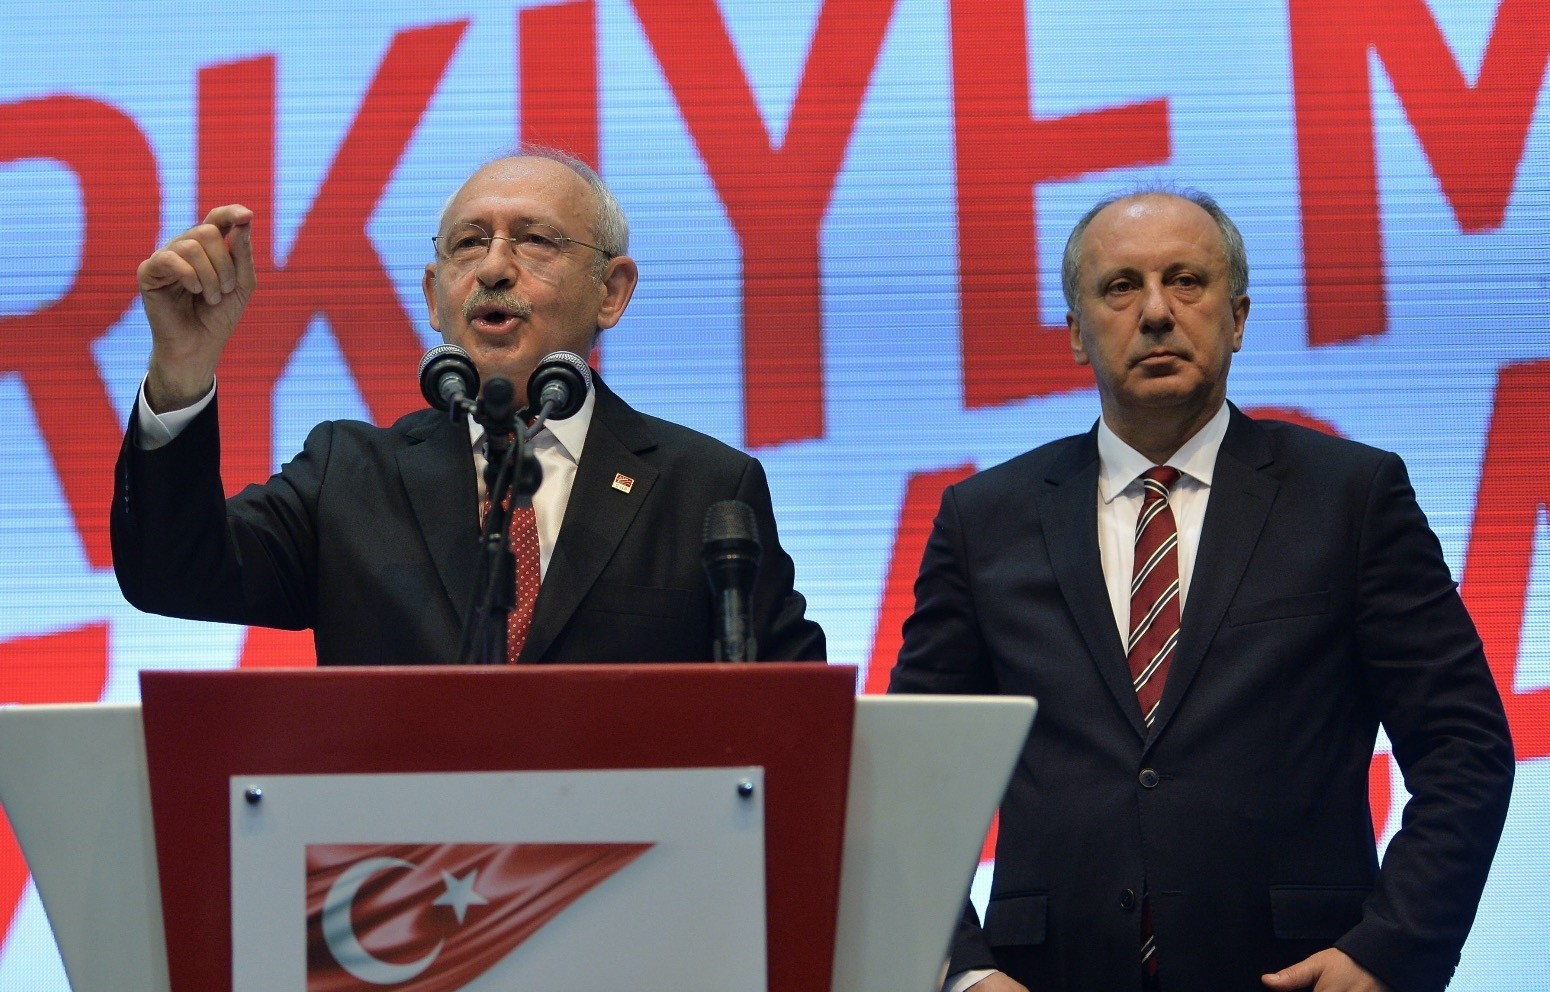 Kemal Ku0131lu0131u00e7darou011flu (L), announcing u0130nceu2019s name as CHP presidential candidate in early May. u0130nce received 30 percent of the votes in the presidential elections, surpassing the voter support for the CHP led by Ku0131lu0131u00e7darou011flu by eight percentage.